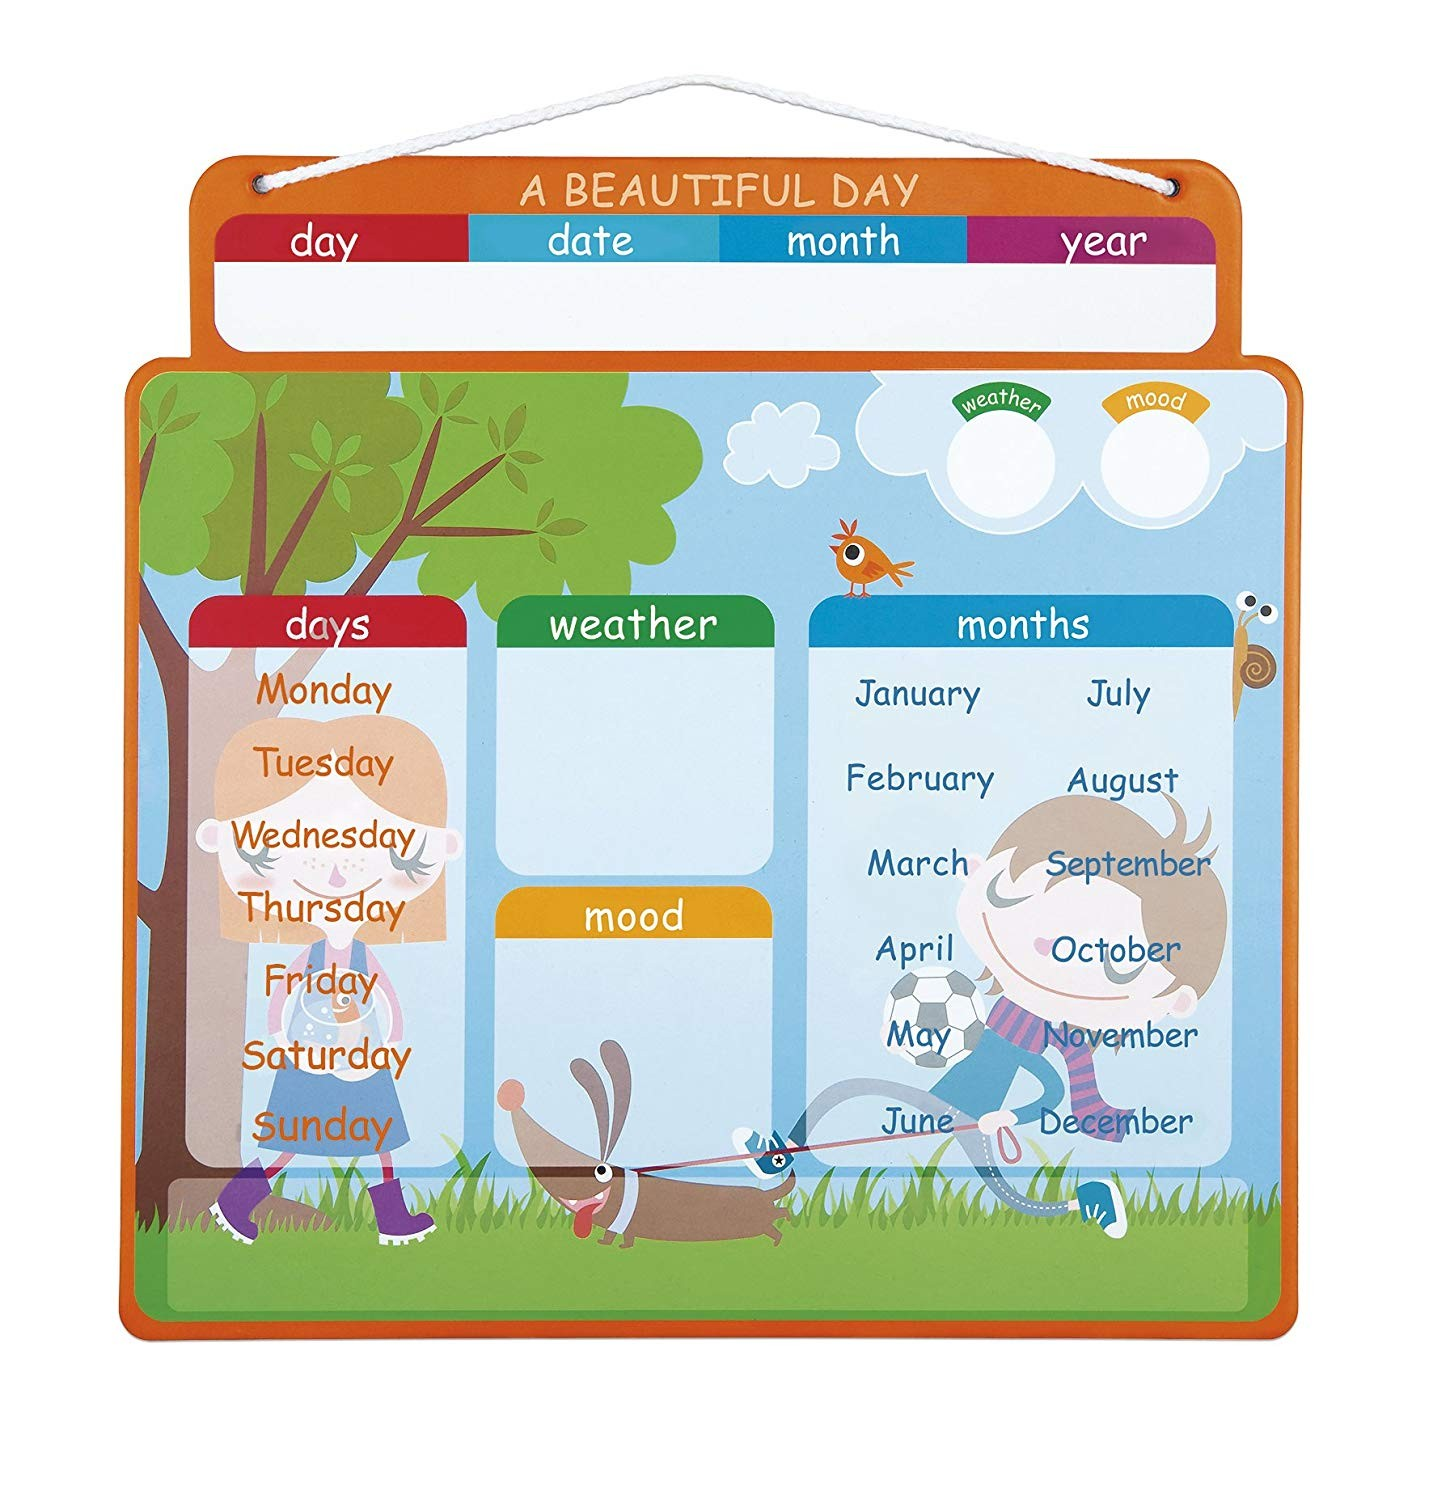 March Reading Month Calendar Activities Más Actual Janod J A Beautiful Day Magnetic Calendar English Version Of March Reading Month Calendar Activities Más Caliente Calendar Of events